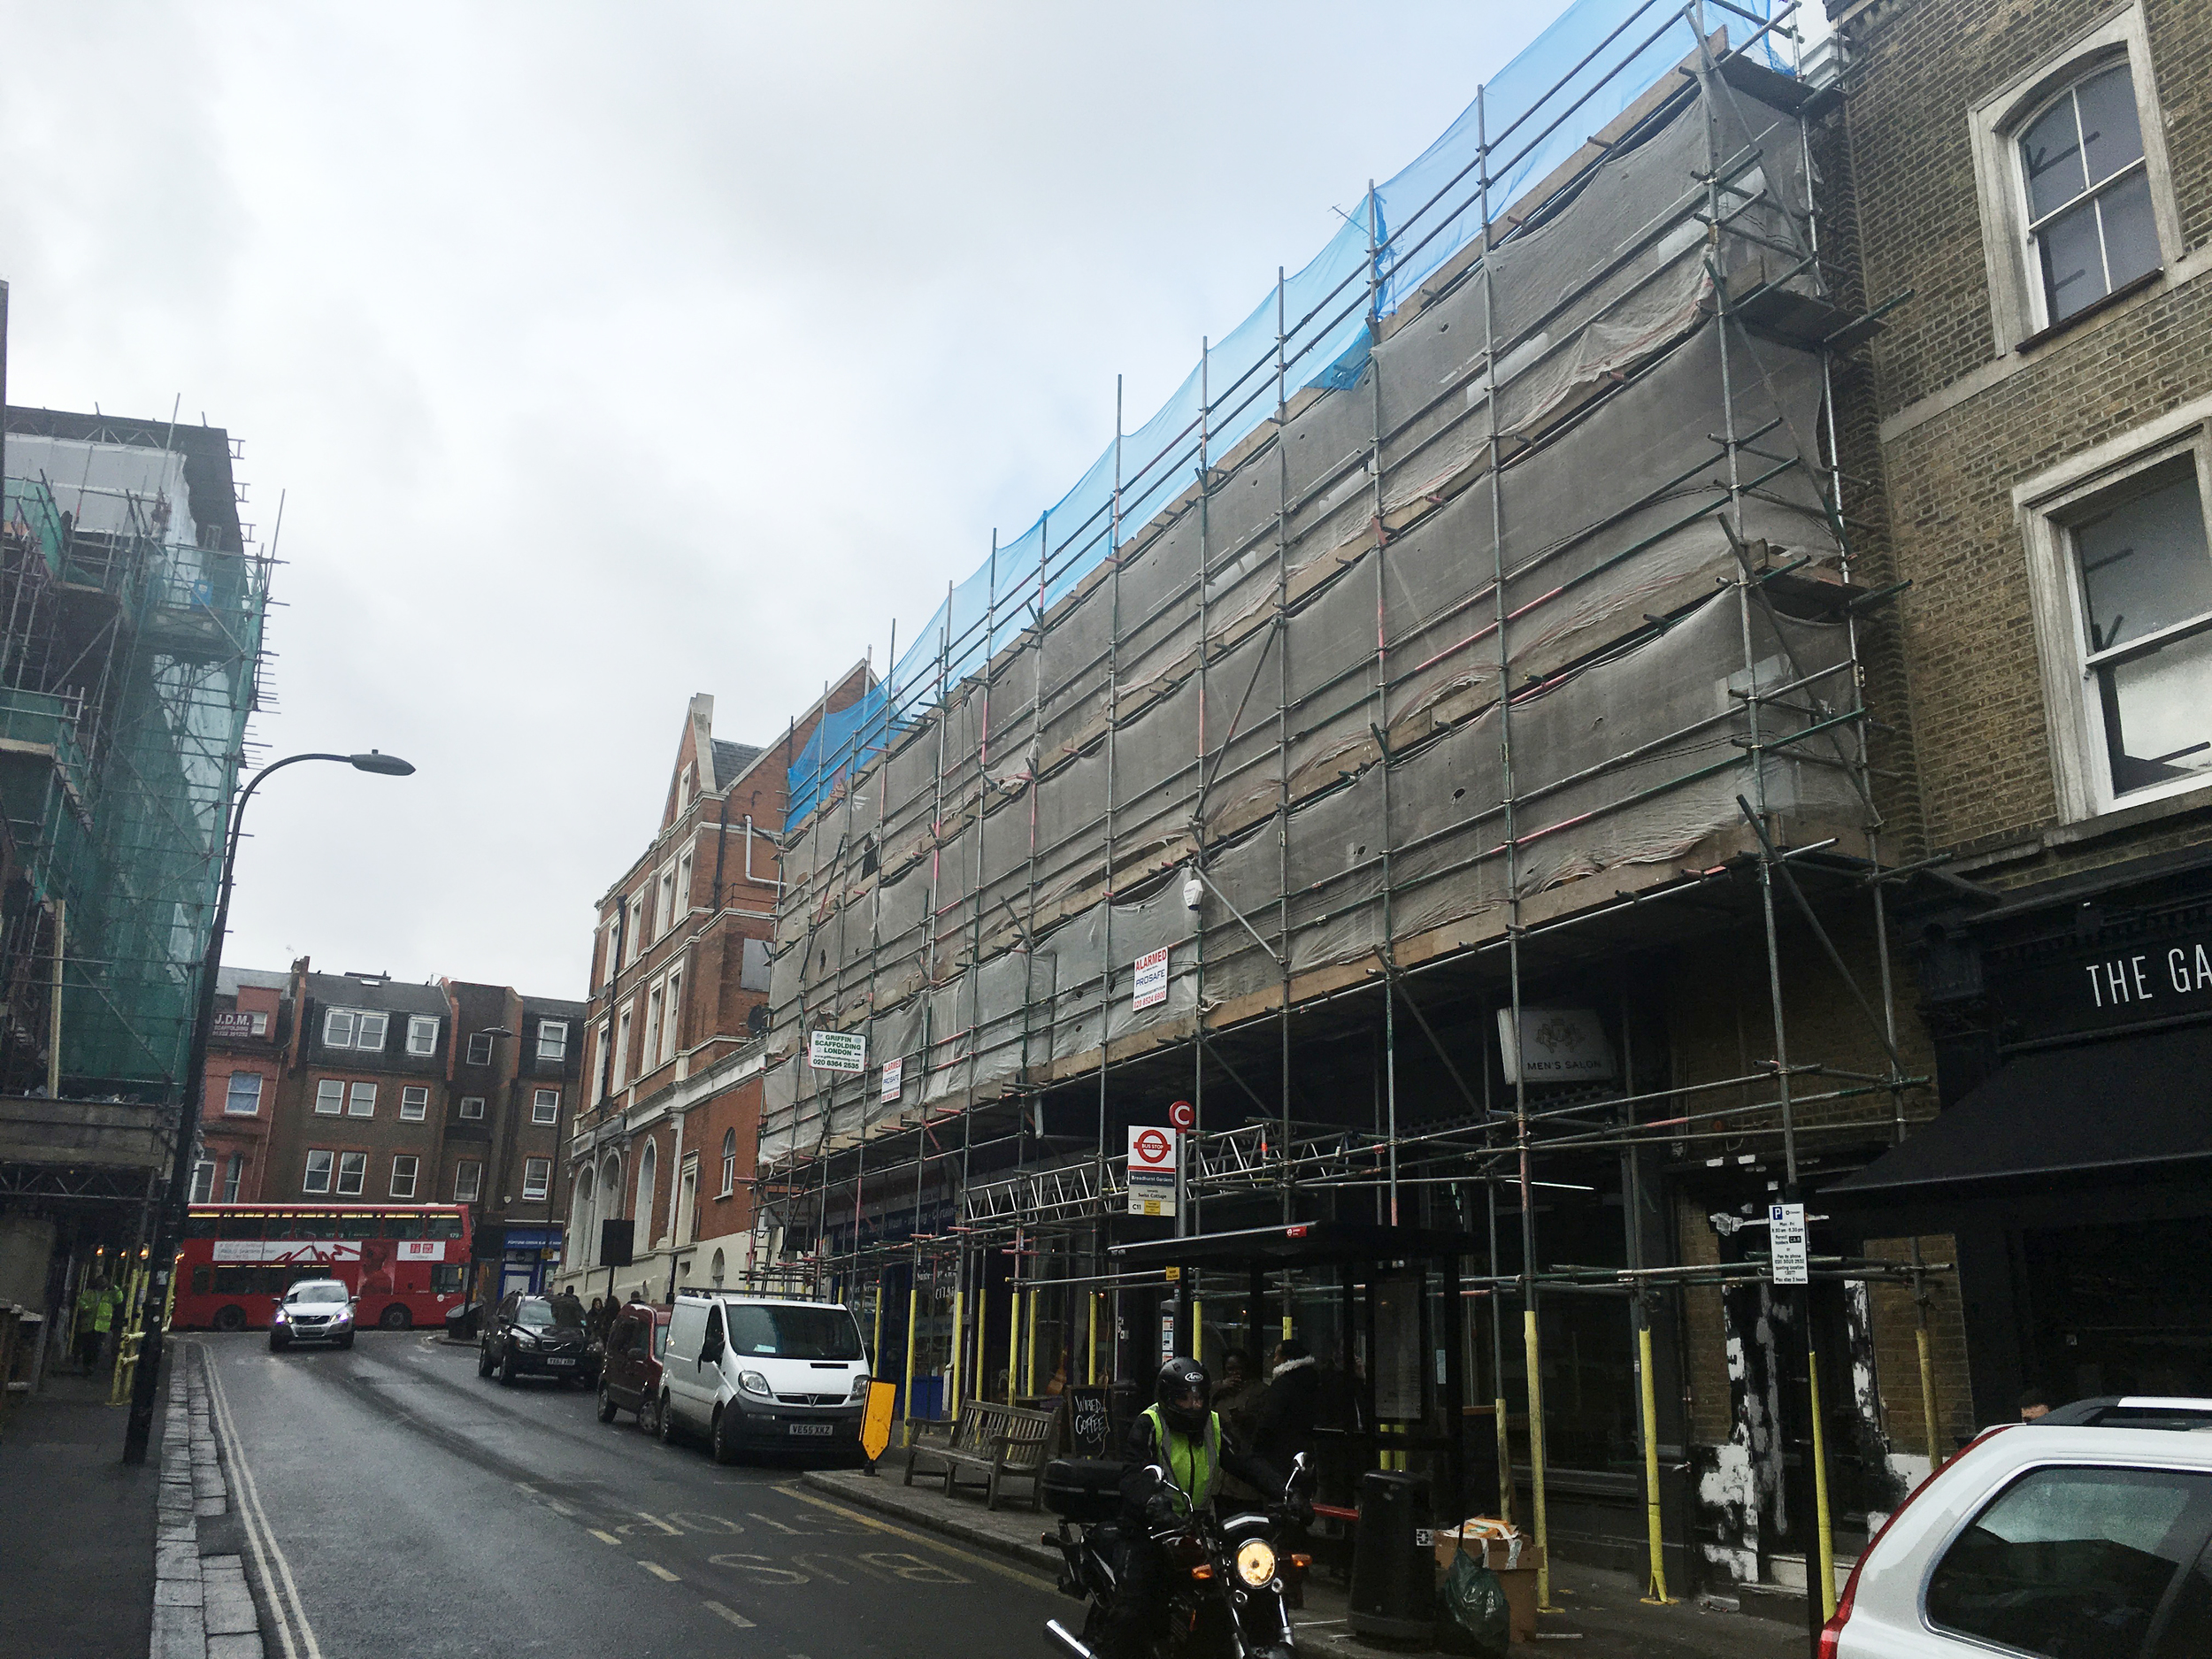 #NHRenovations #Painter #Decorator #London #BroadhurstGardens #Westhampstead #Scaffolding #Commercial #Exterior #Building